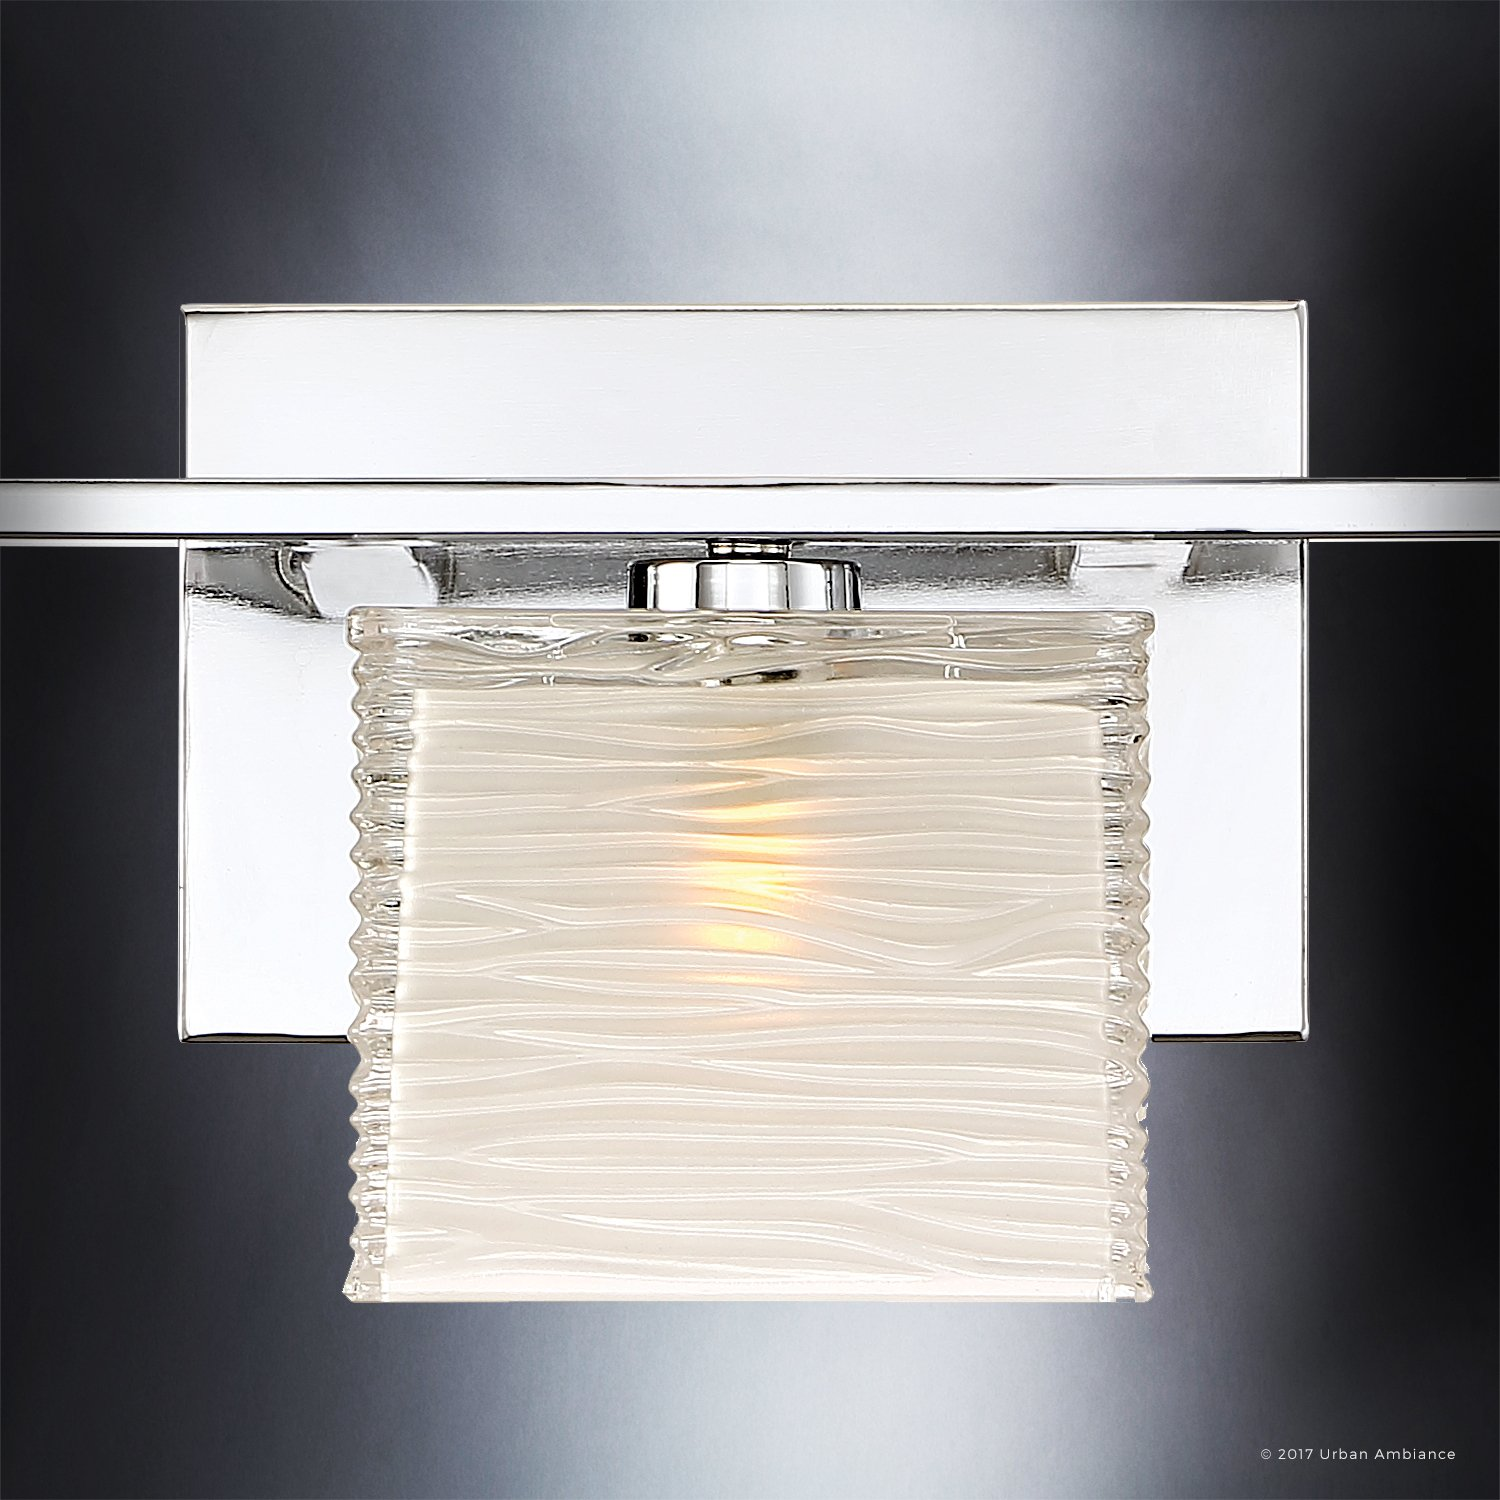 Luxury Modern Bathroom Light, Medium Size: 6.75''H x 22.5''W, with Style Elements, Polished Chrome Finish and Sandblasted Inner, Clear Wavy Outer Glass, G9 LED Technology, UQL2723 by Urban Ambiance by Urban Ambiance (Image #6)